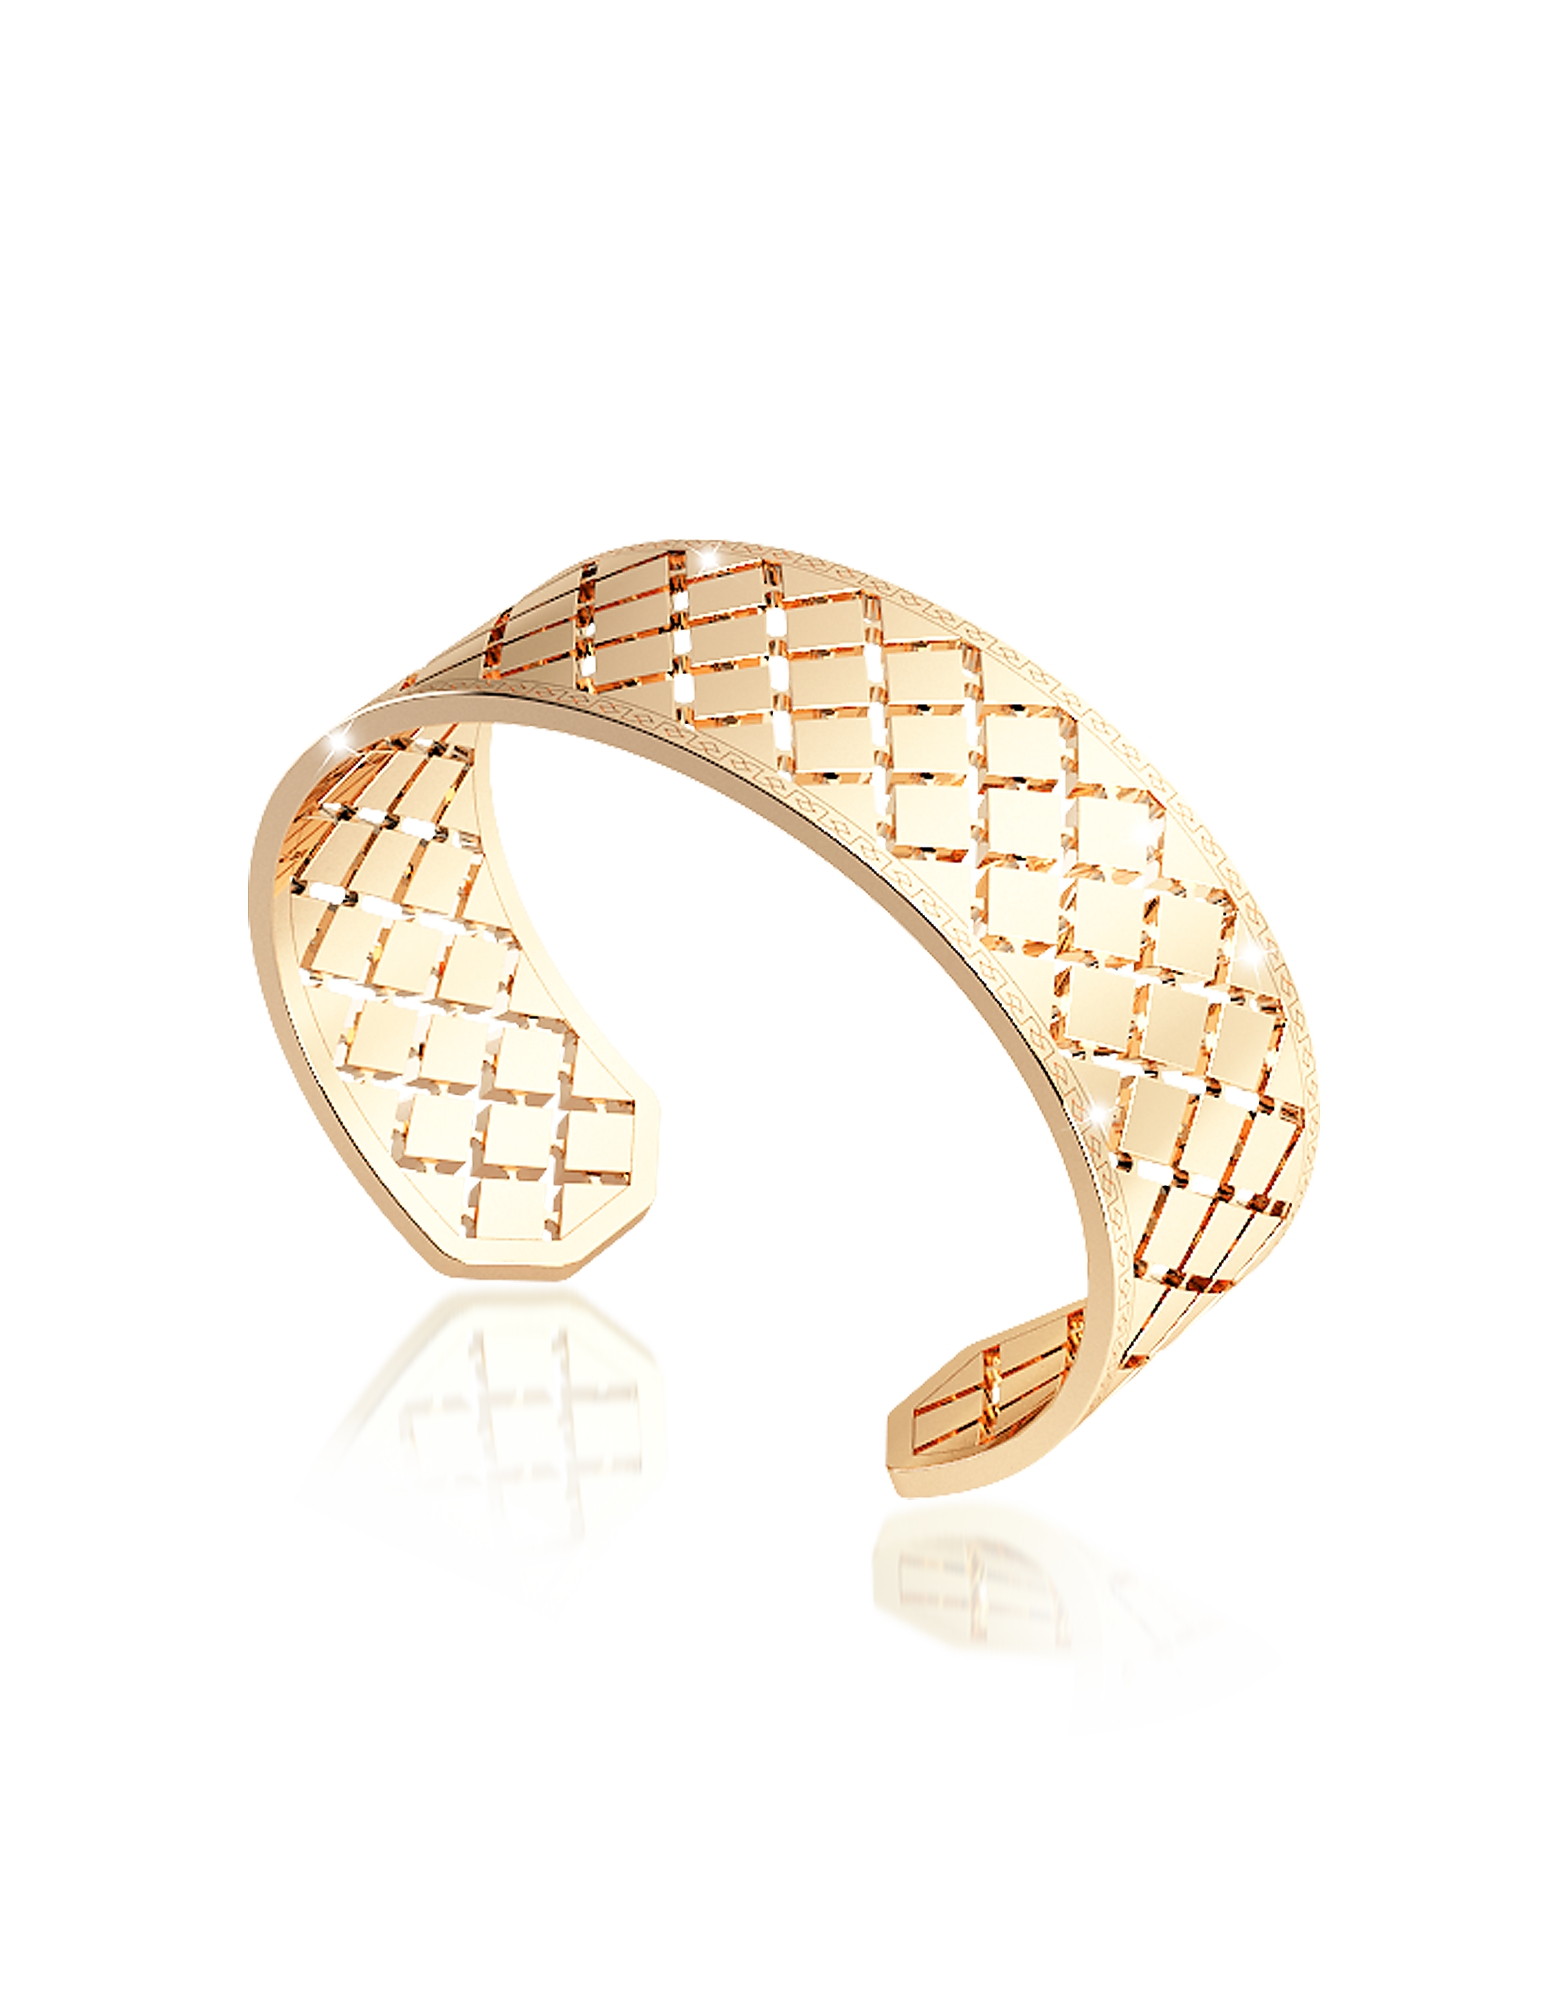 Rebecca Bracelets, Melrose Yellow Gold Over Bronze Bangle Bracelet